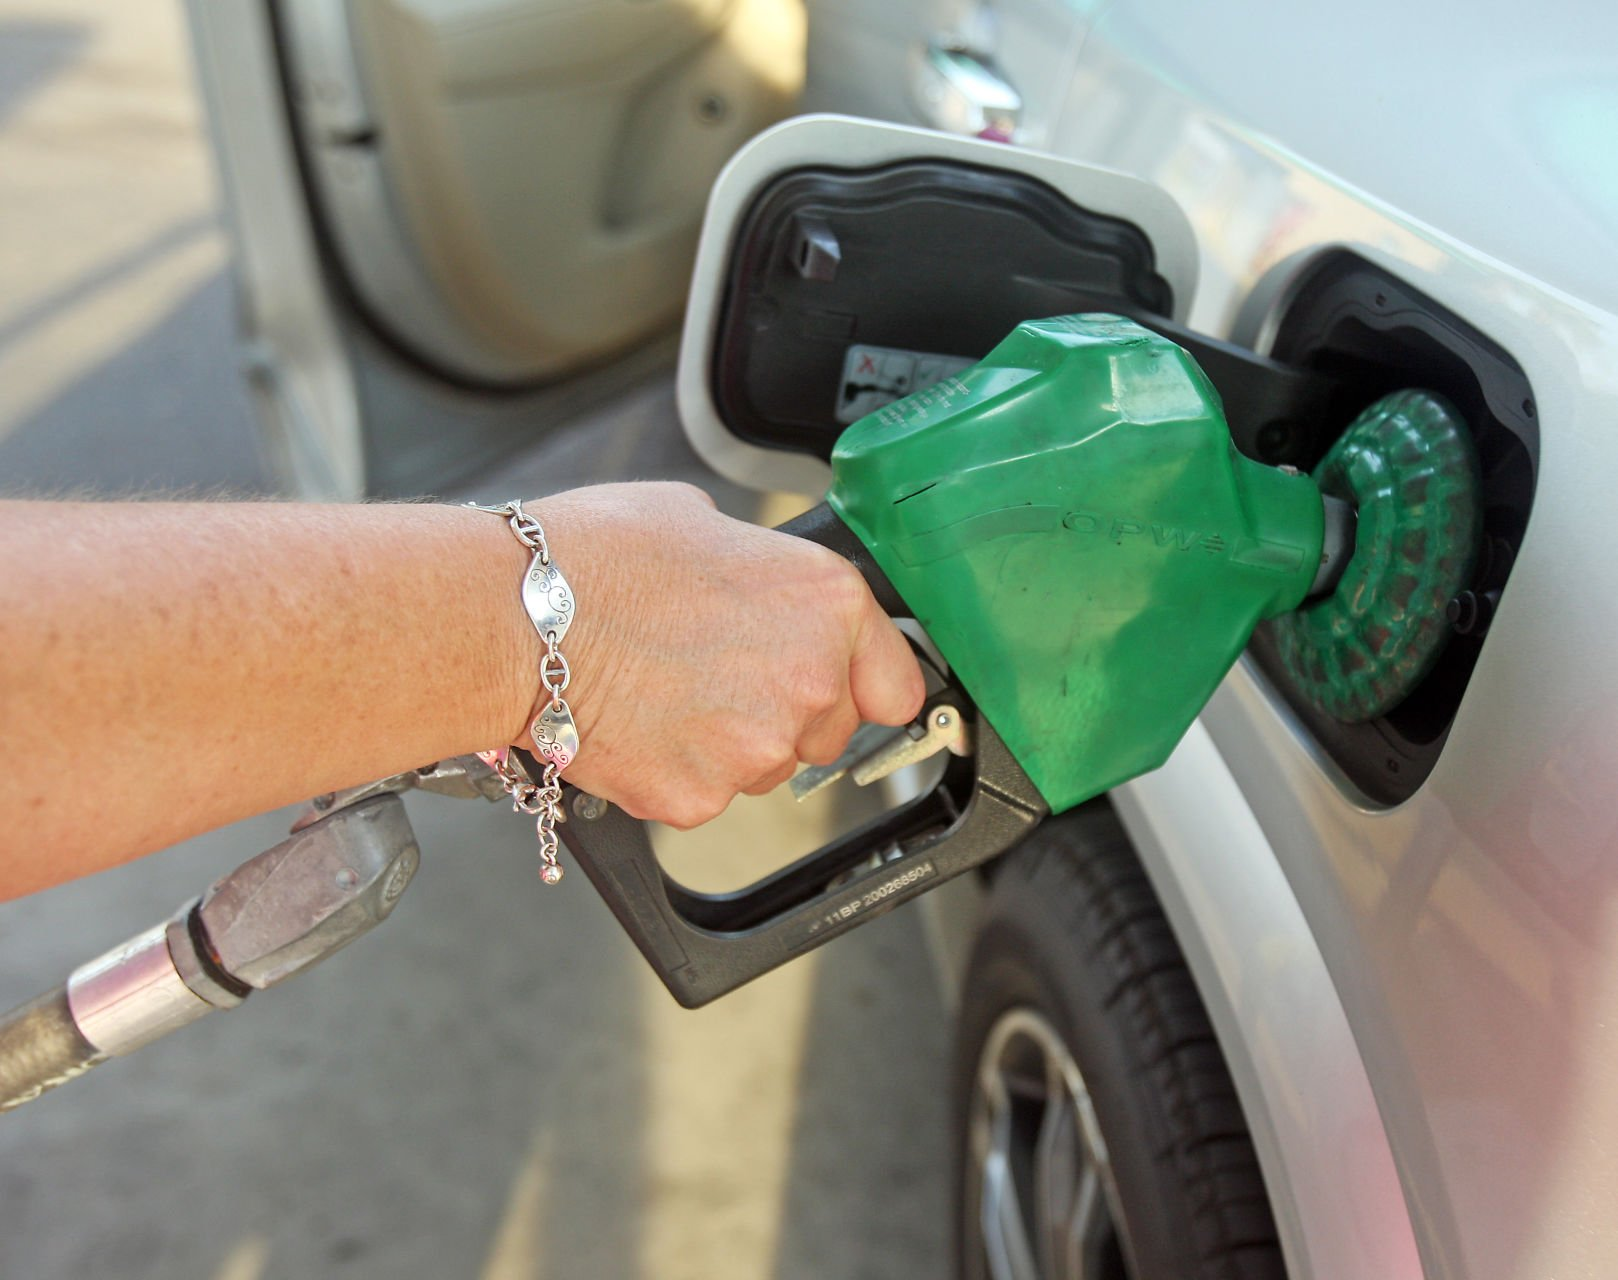 Gas prices up a penny in RI, 3 cents in MA